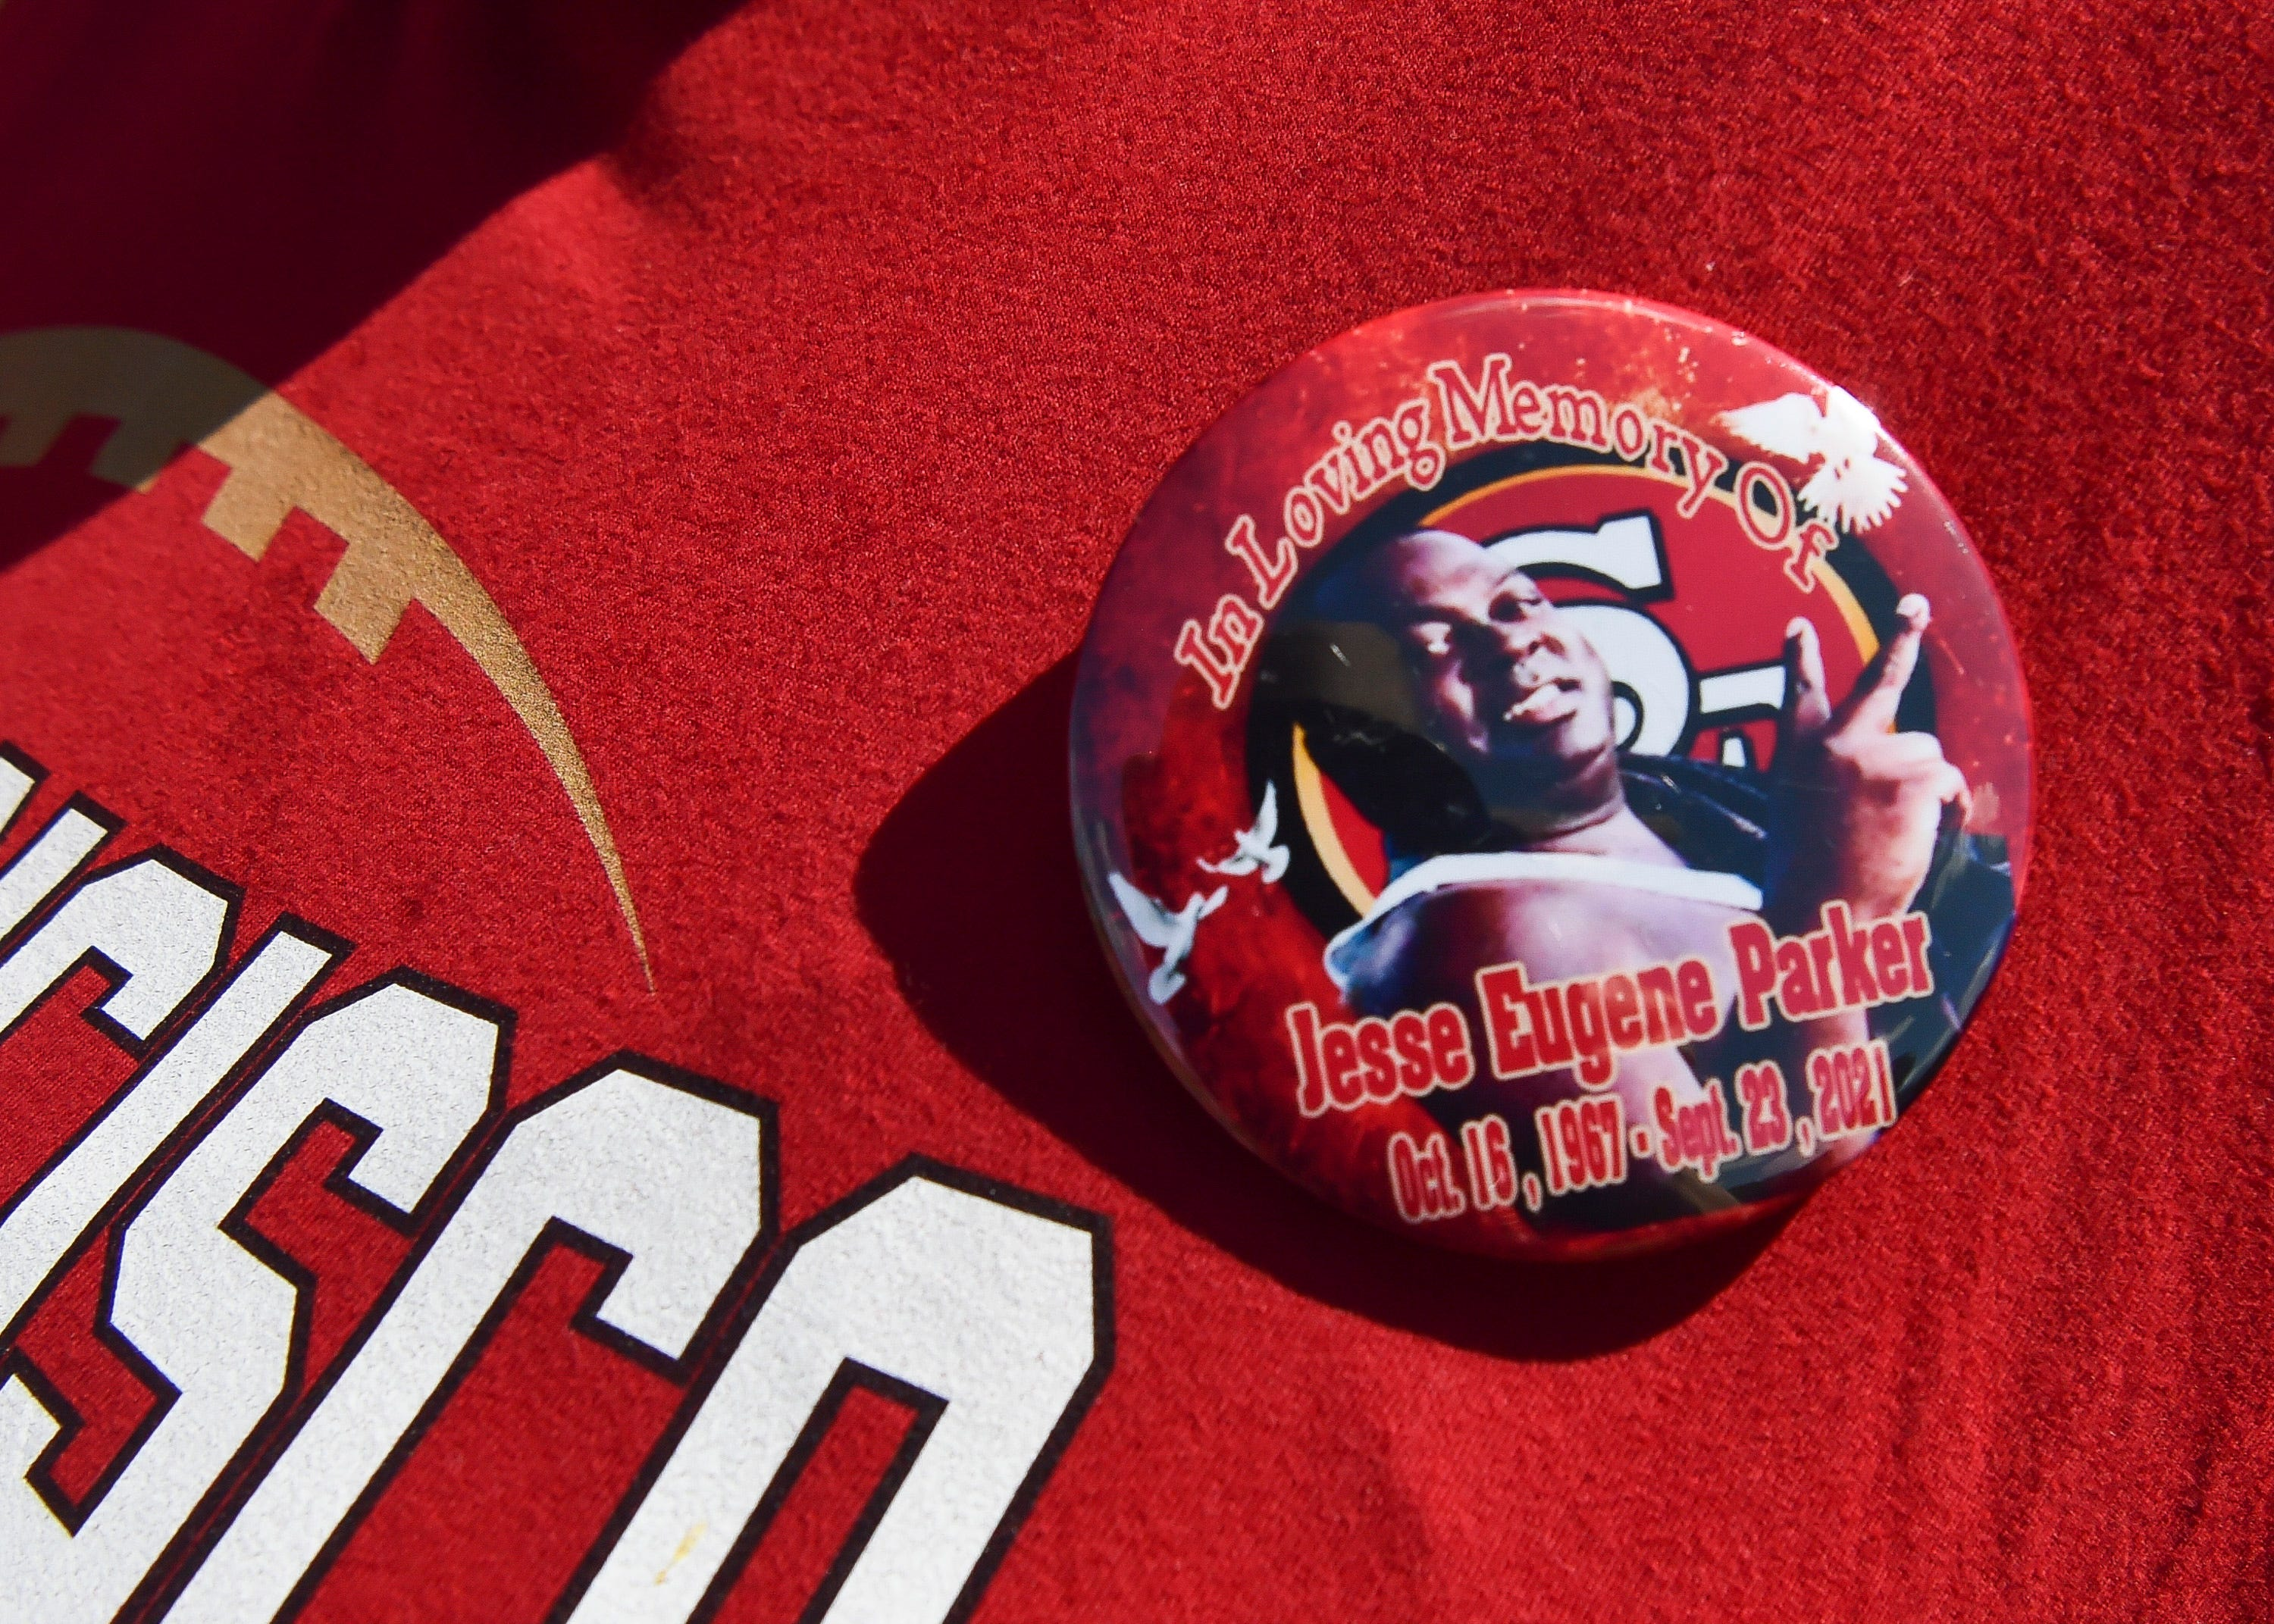 As COVID-19 vaccine efforts continue, 'gentle giant' remembered with 49ers theme | Opinion